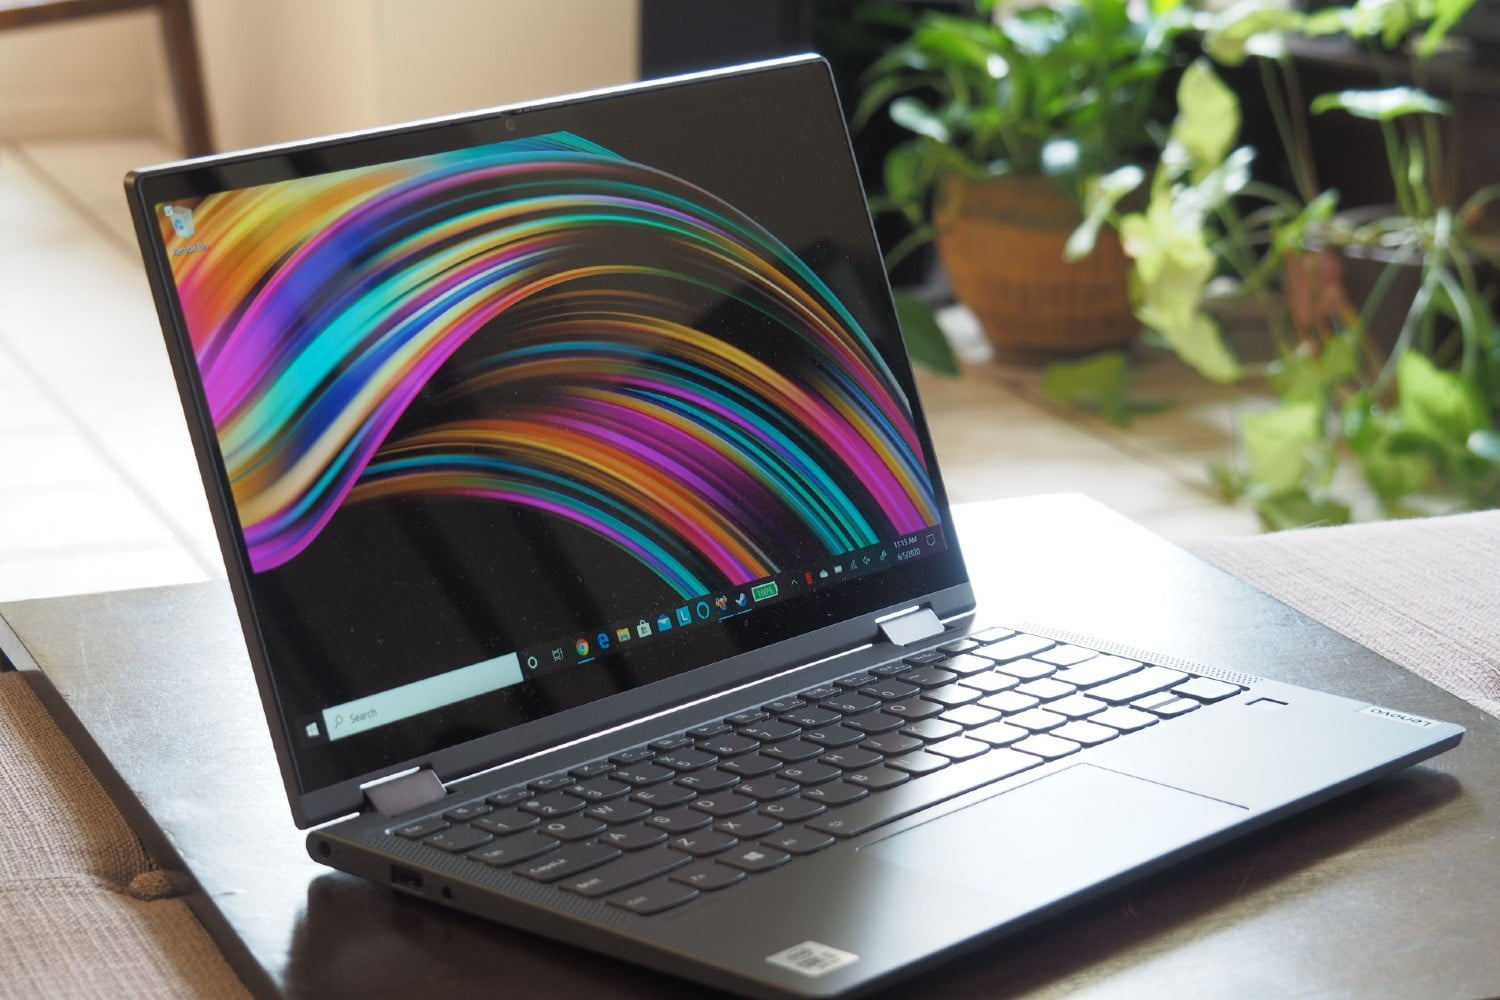 Top 20 Budget Laptops That are Perfect for Students